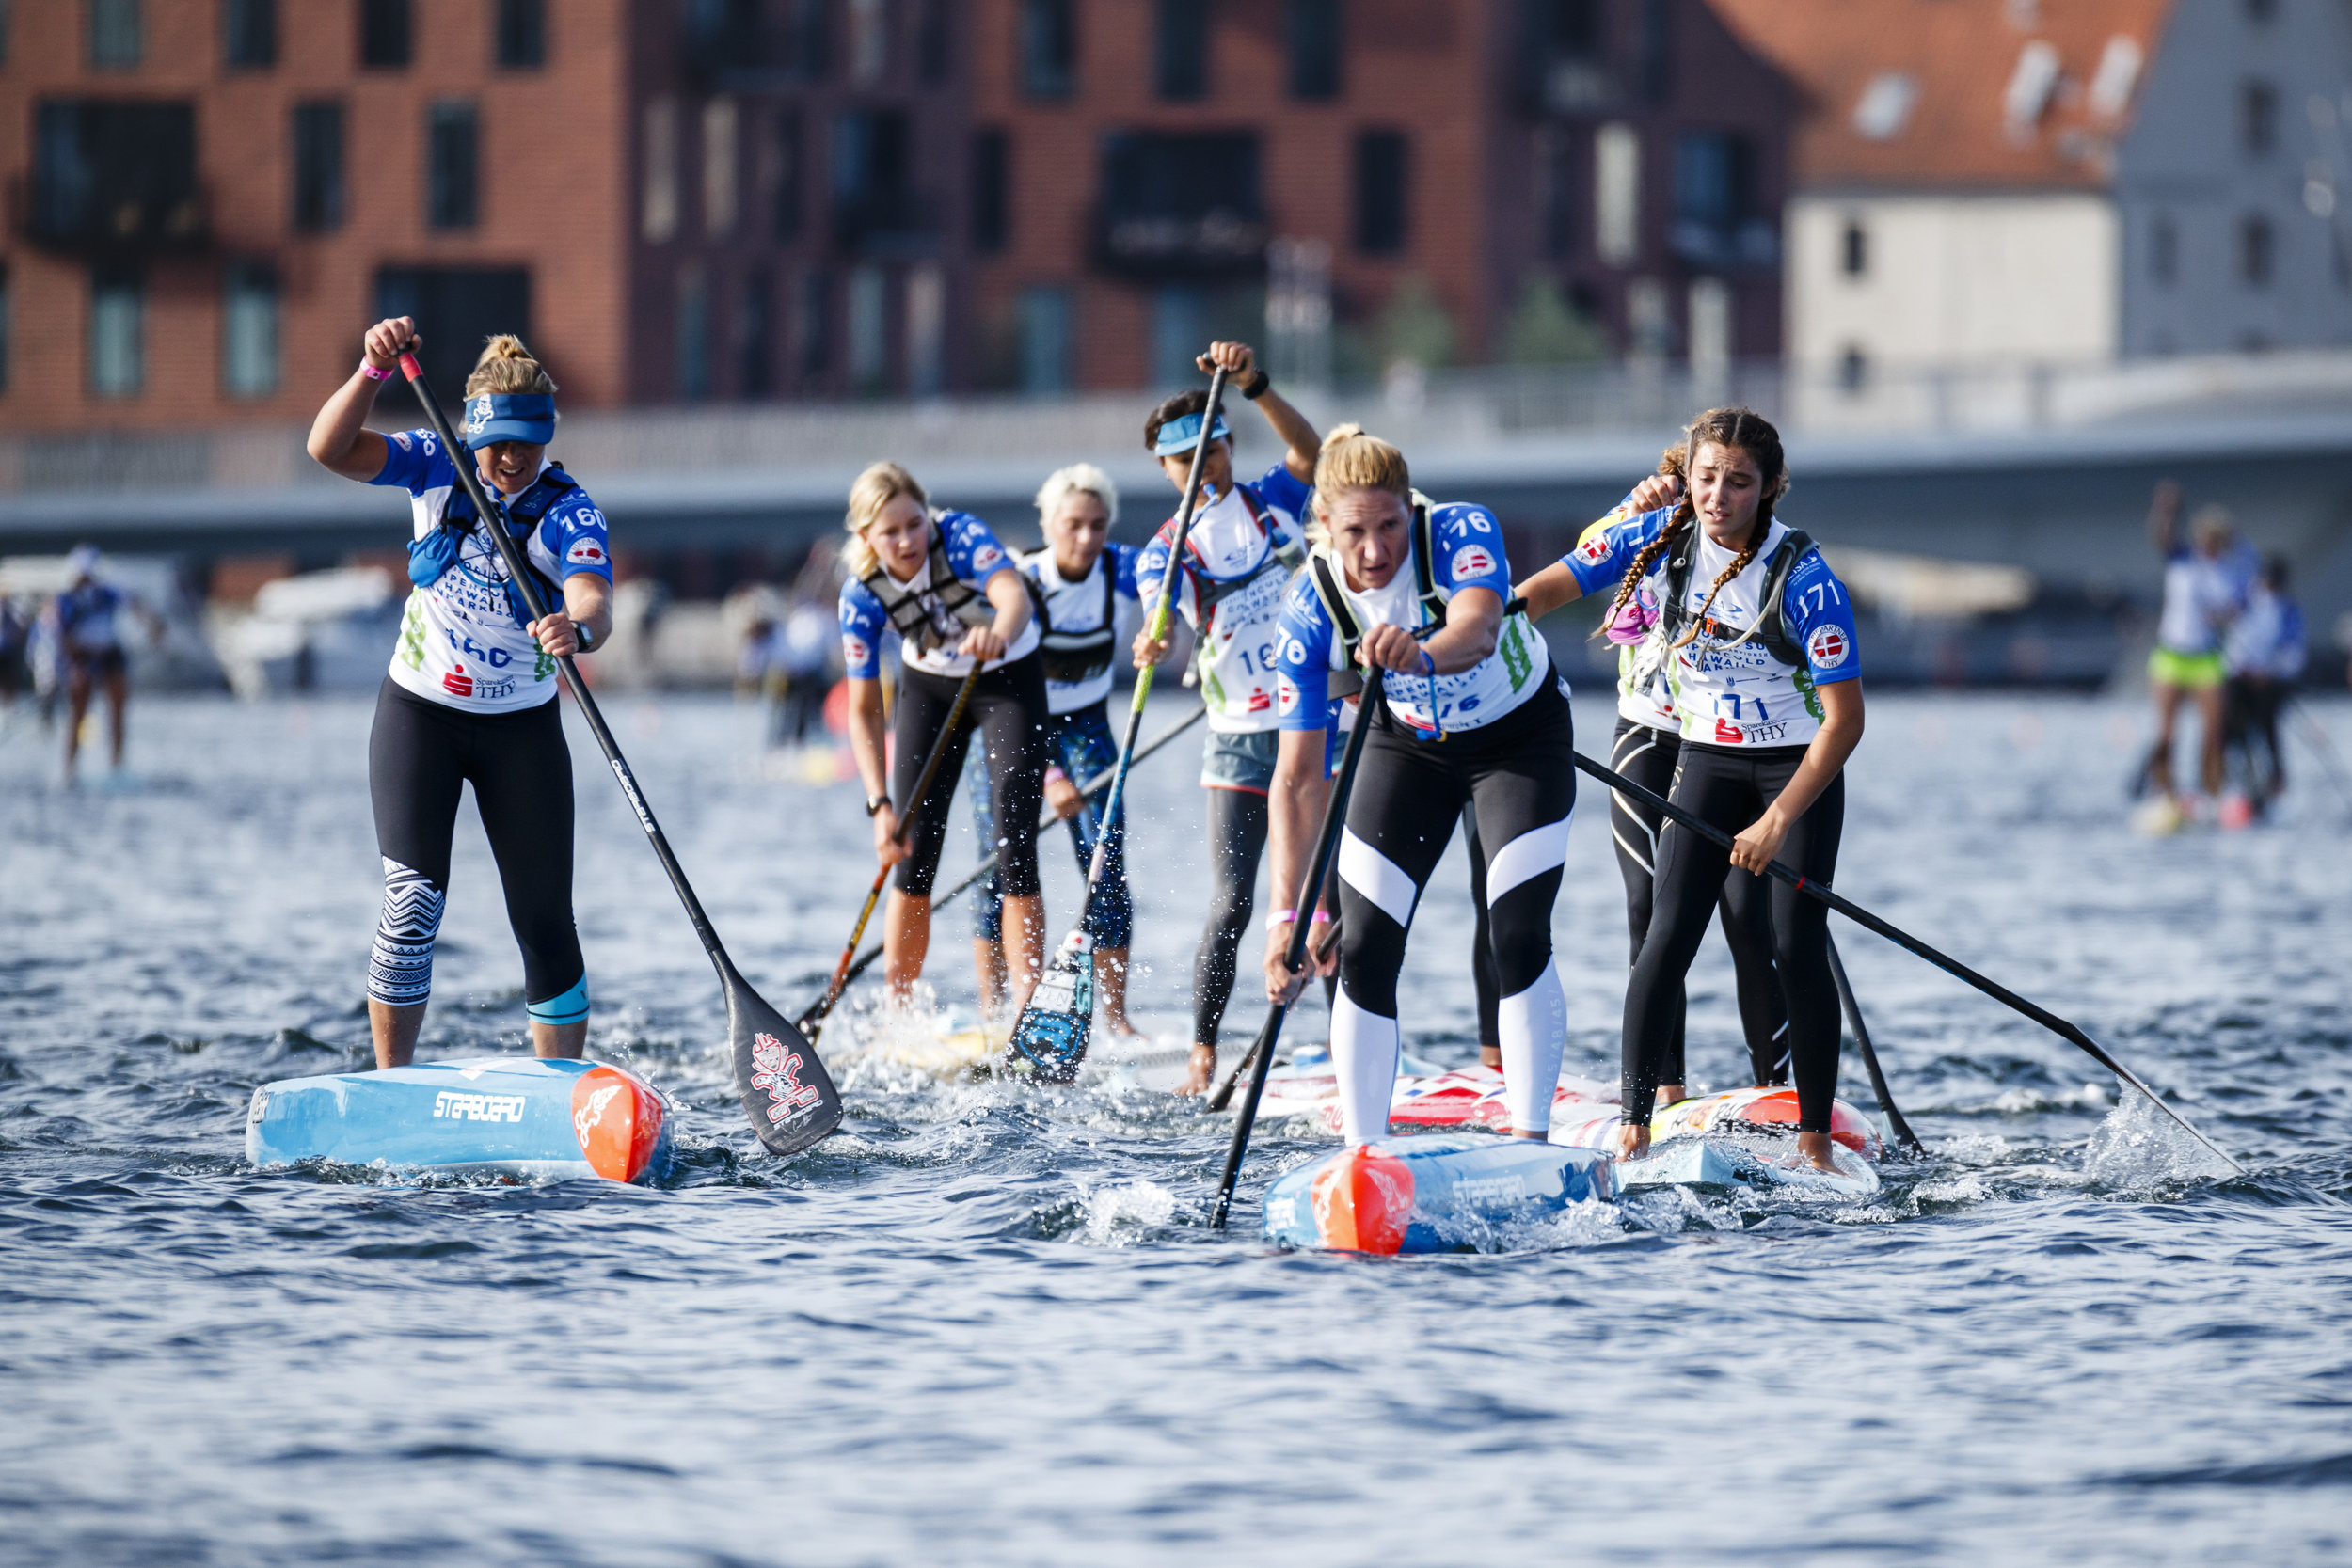 Distance Race - Distance Race is the marathon distance of elite SUP. Women and men compete in separate races. In Denmark, the route will start at the Opera House across from Amalienborg (the Queen's Palace). From there, the athletes paddle to the Little Mermaid, where they turn and paddle back. Four rounds or 20 km in total will be completed.